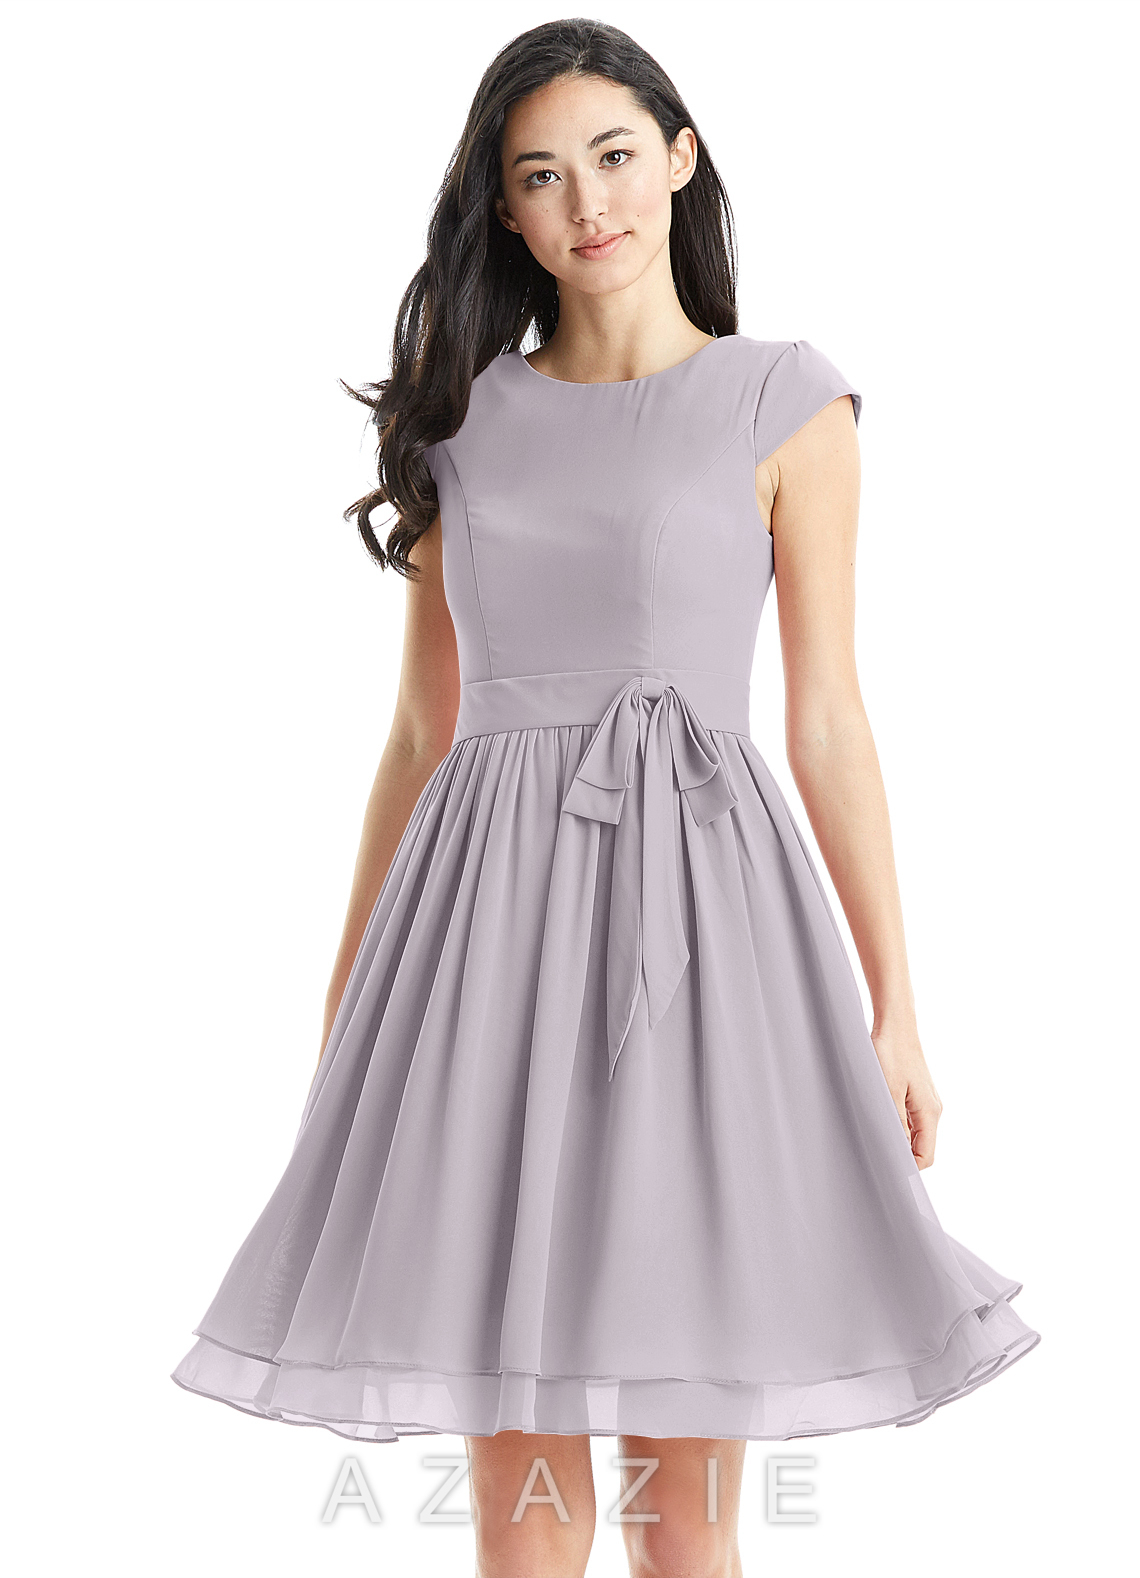 57759d12c0 Azazie Ingrid Bridesmaid Dress - Dusk